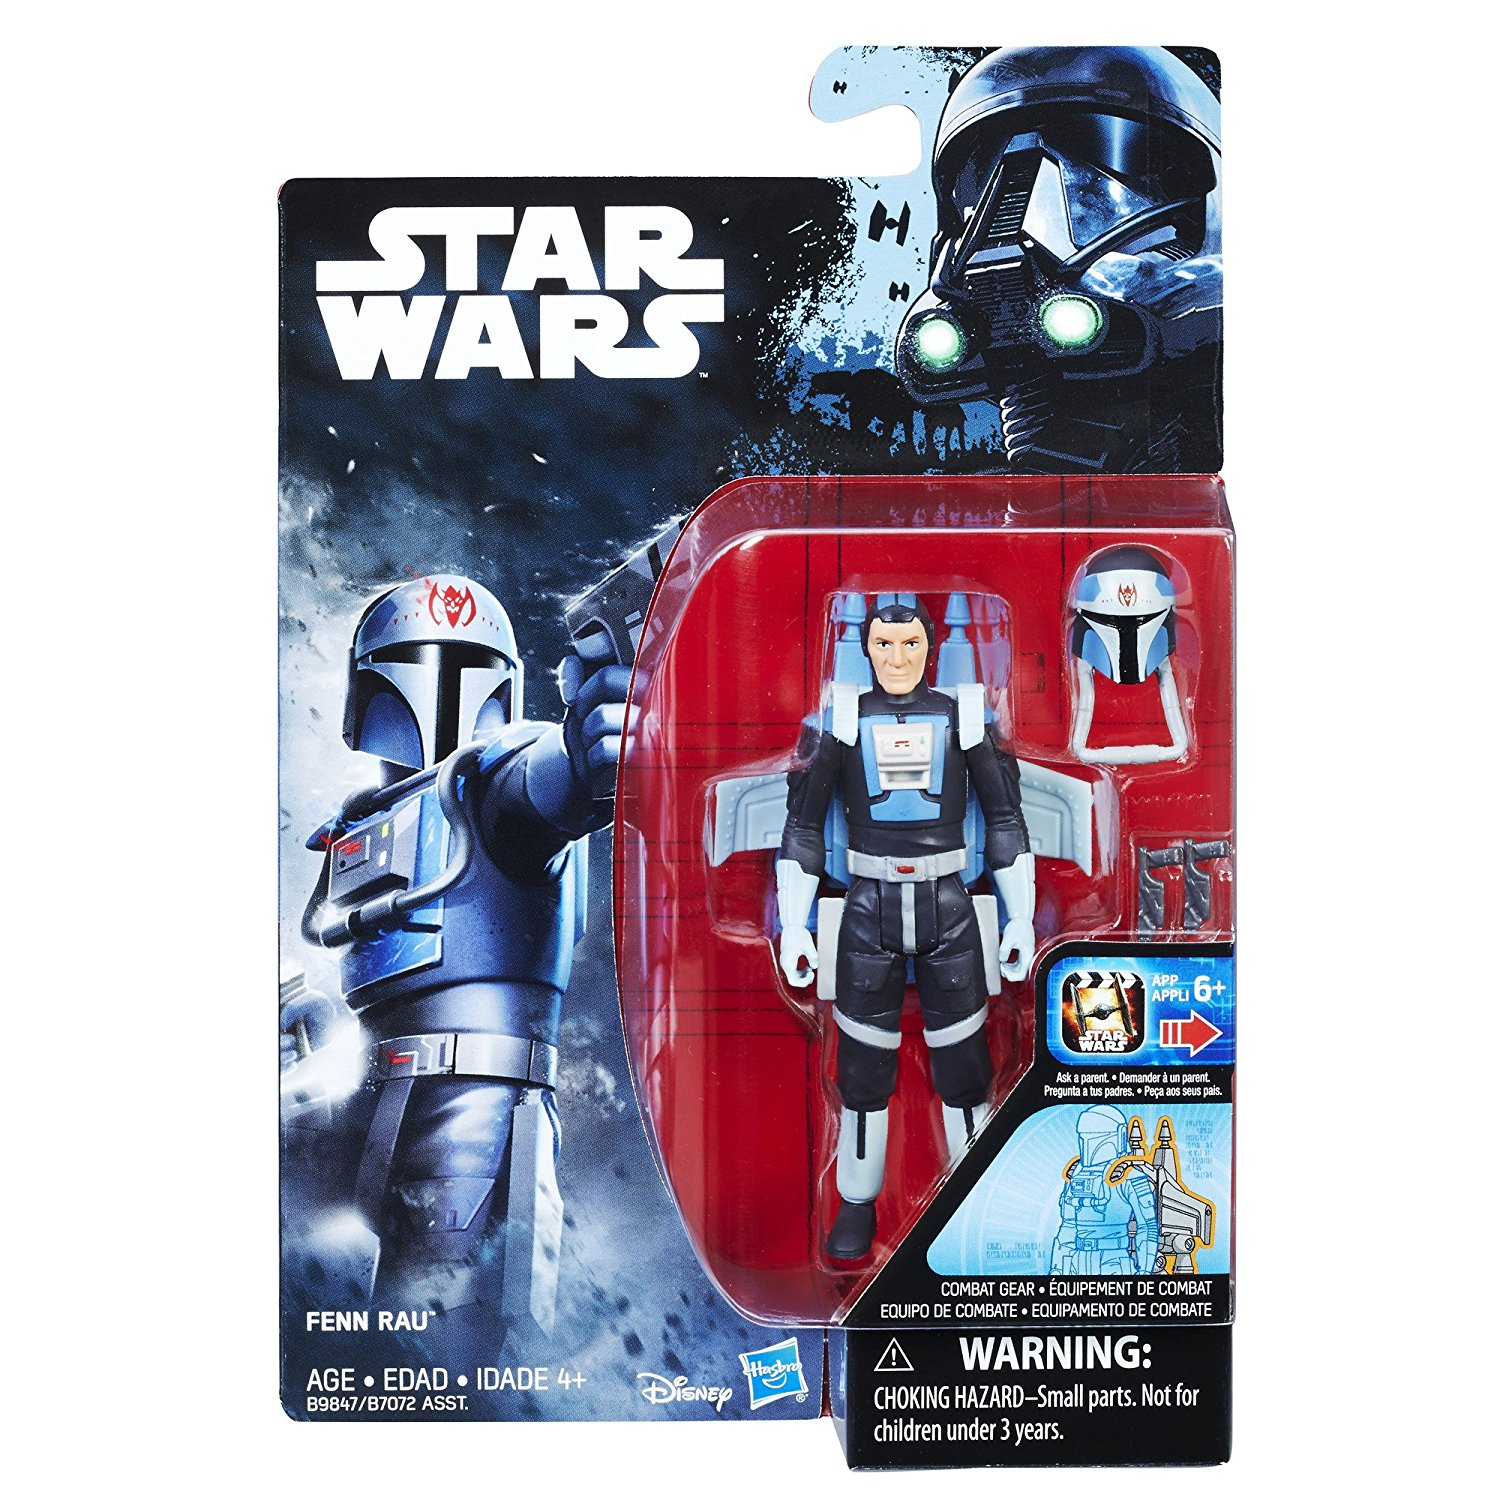 Hasbro Star Wars Rogue One 3.75″ Wave 4 Listed On Amazon With A May 1st Release